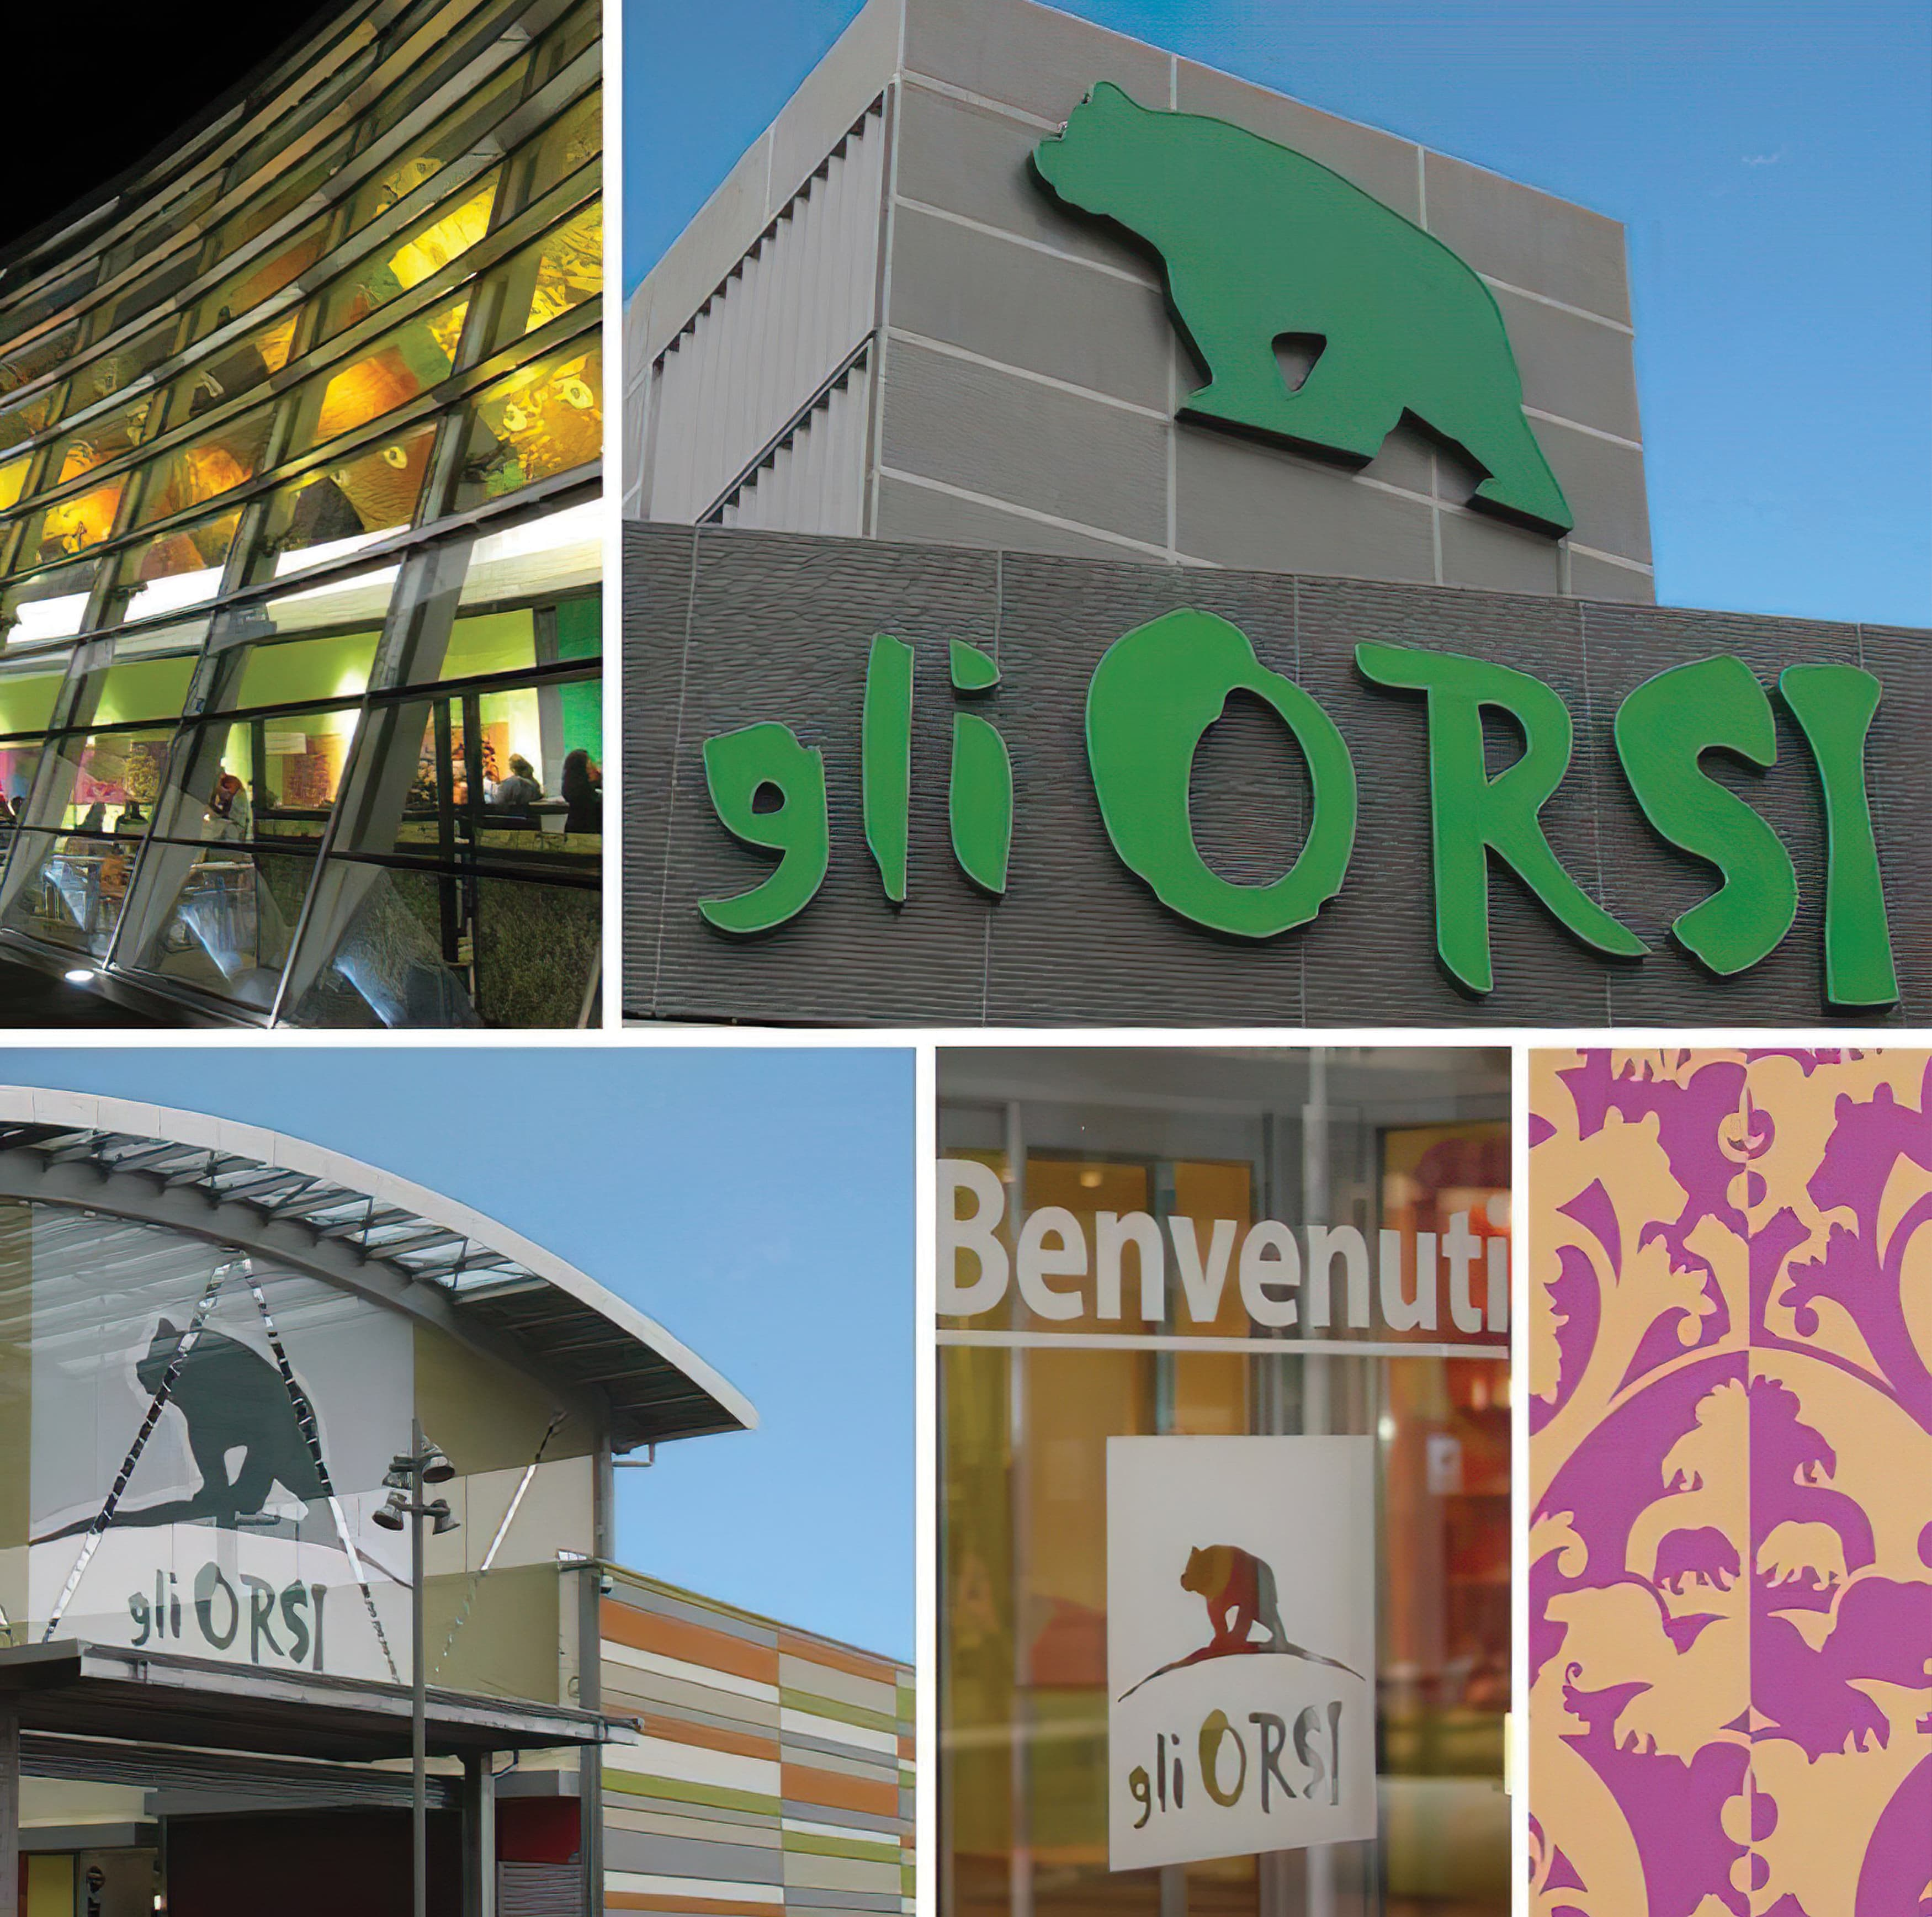 A number of signs RSM developed for the wayfinding and identity signage program at Gli Orsi in Biella, Italy.